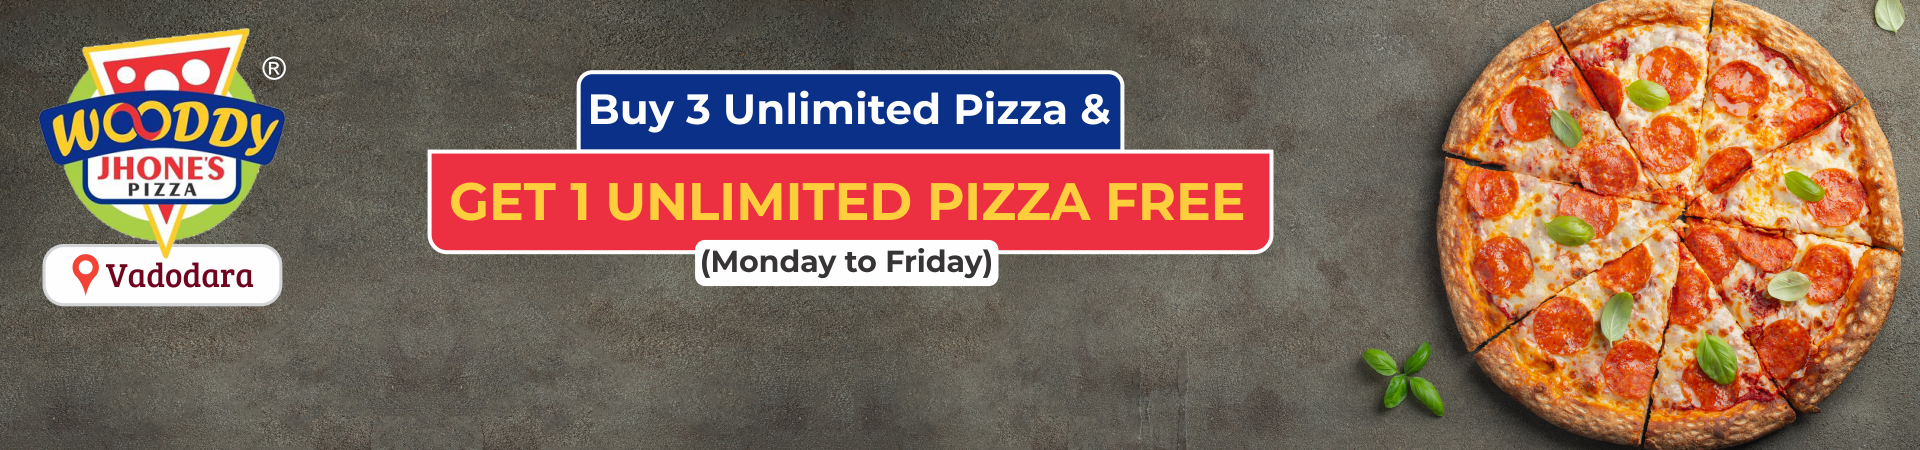 Buy 3 Unlimited Pizza & Get 1 Unlimited Pizza Free (Monday to Friday)